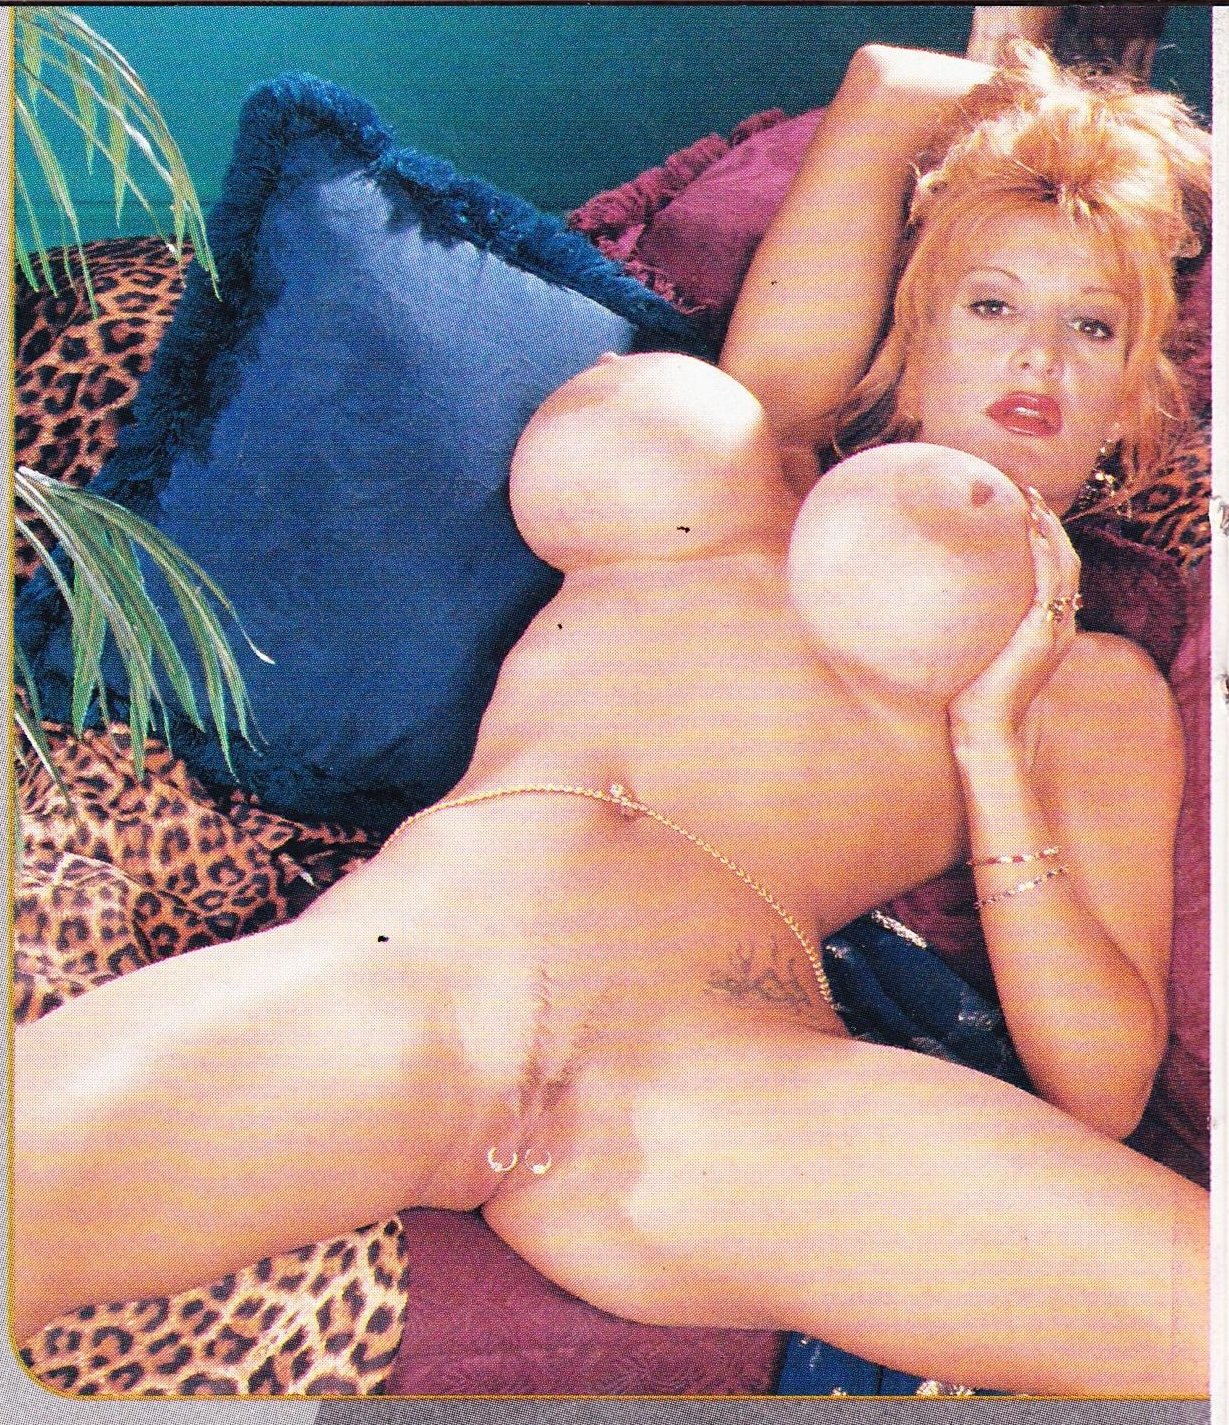 Sable nude